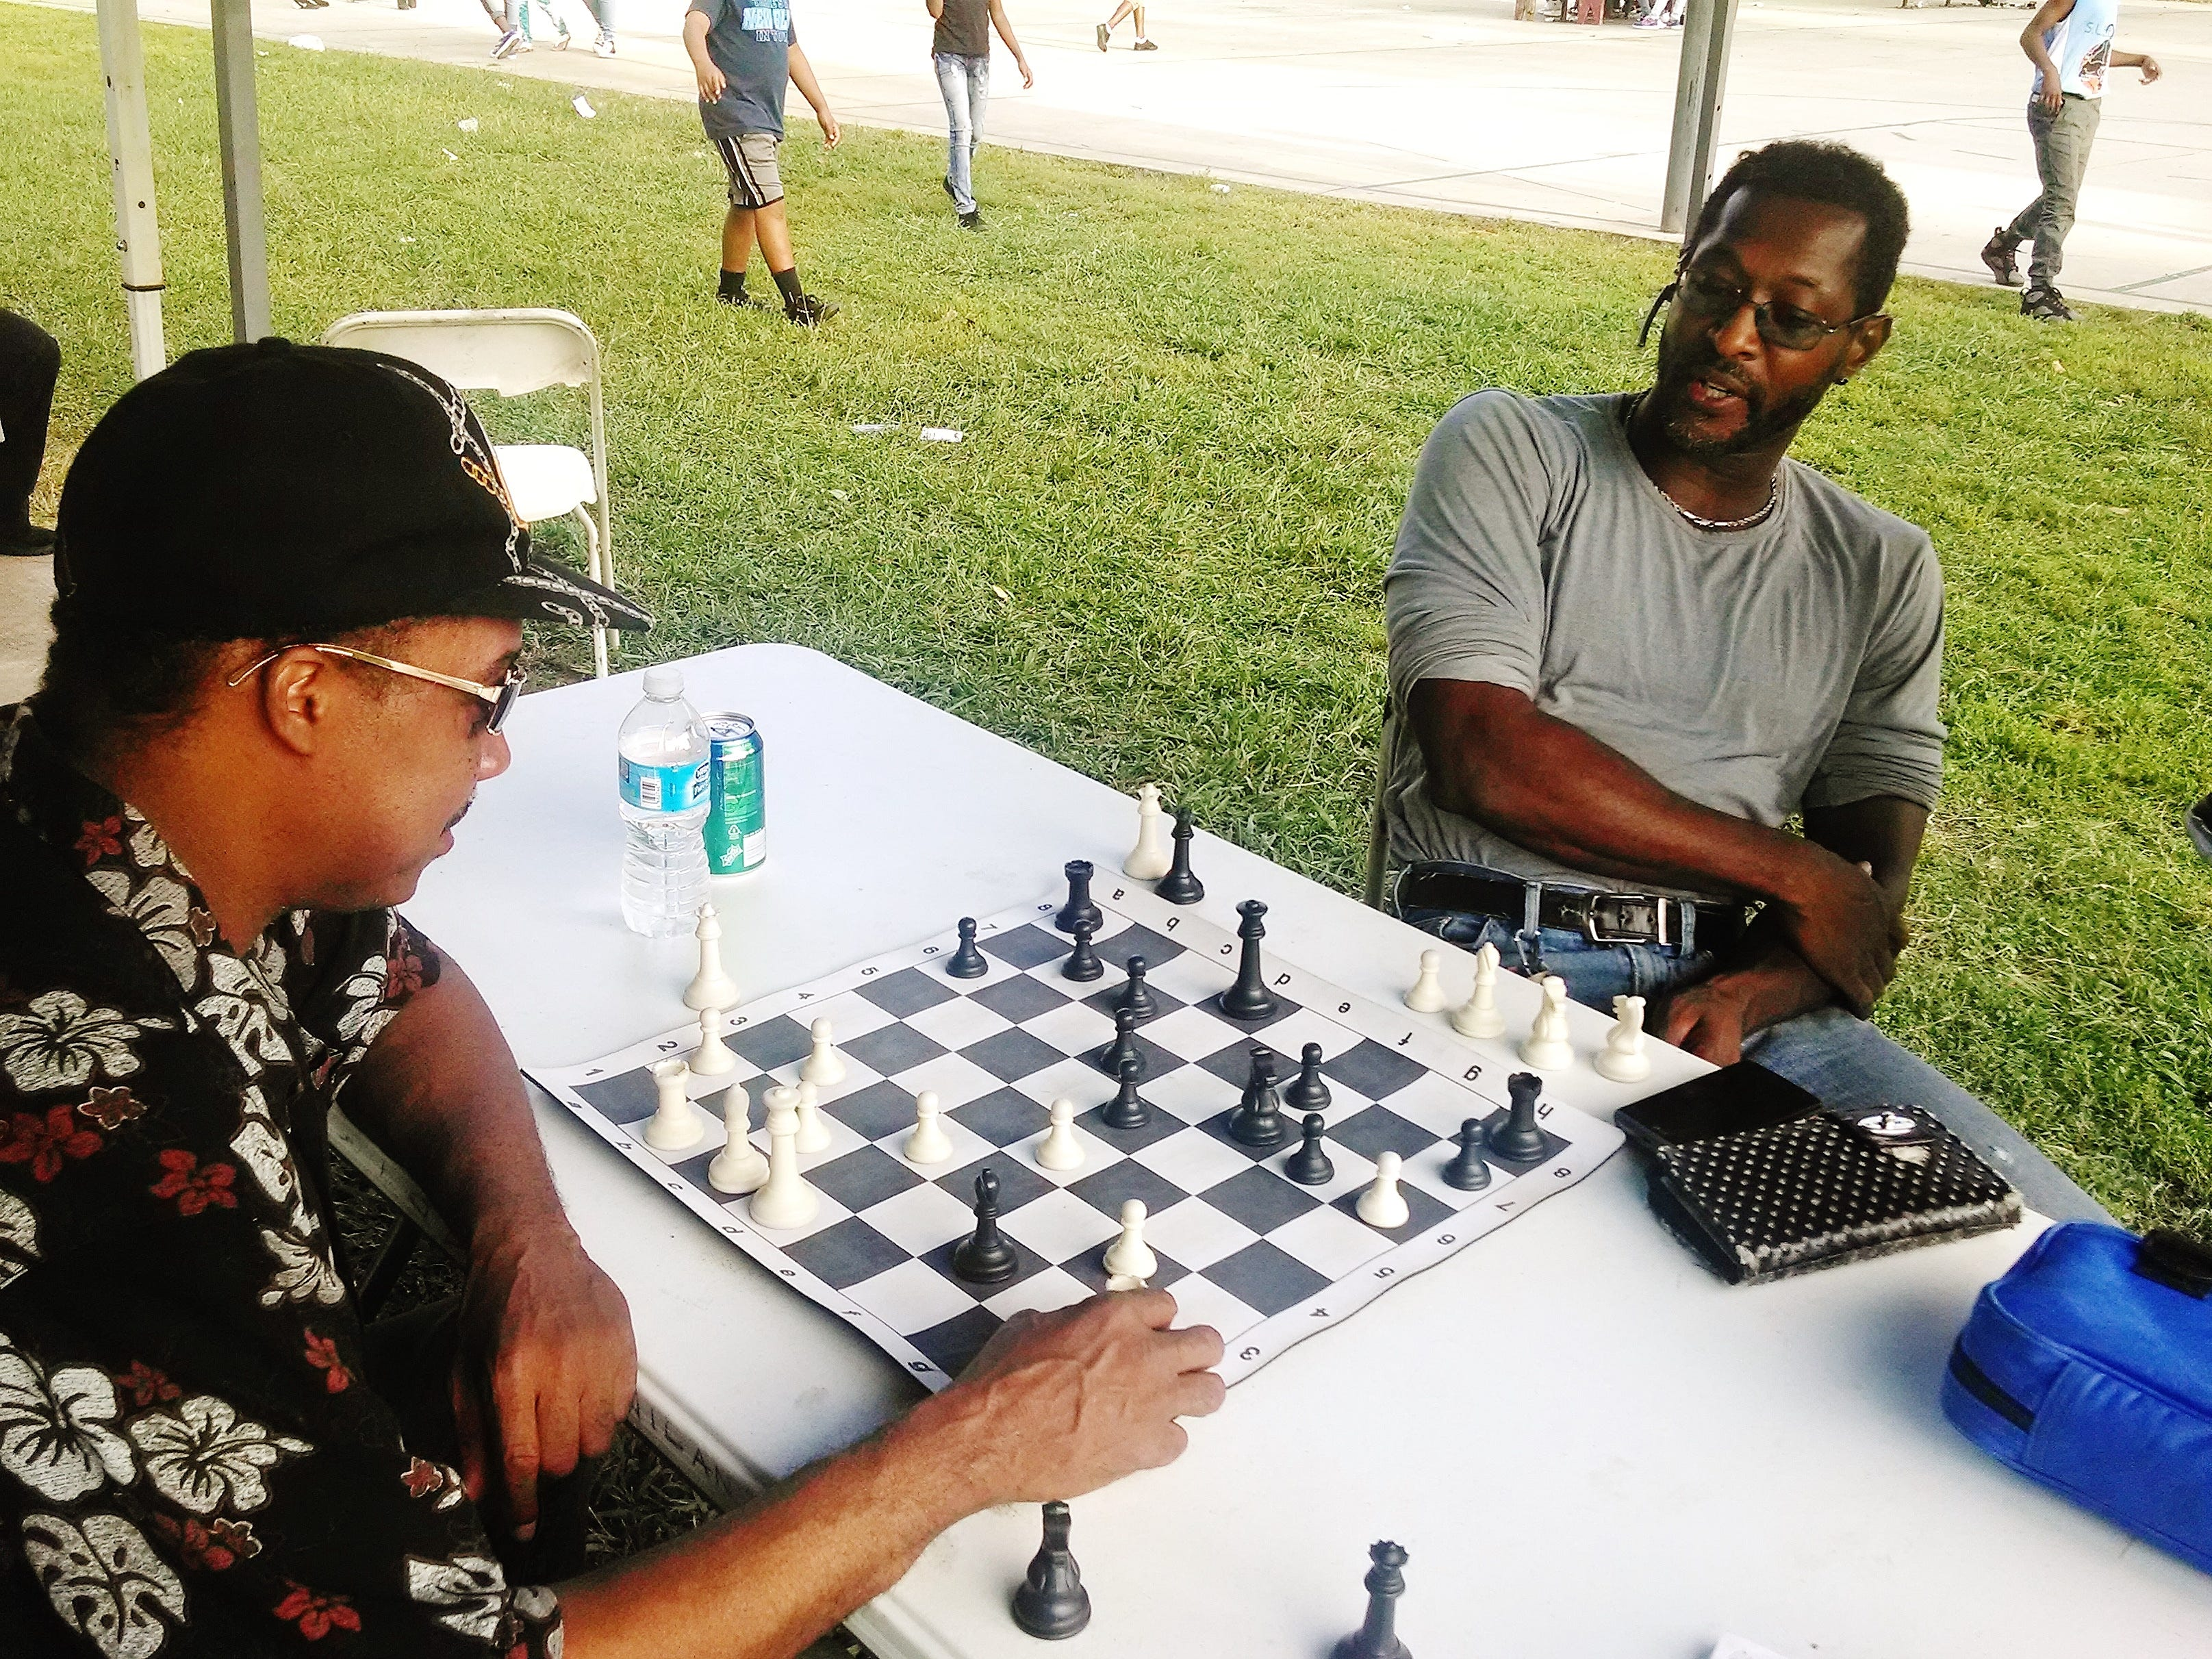 Arthur Asheford joined Carl Thomas in a game of chess during the Austin Homes reunion.